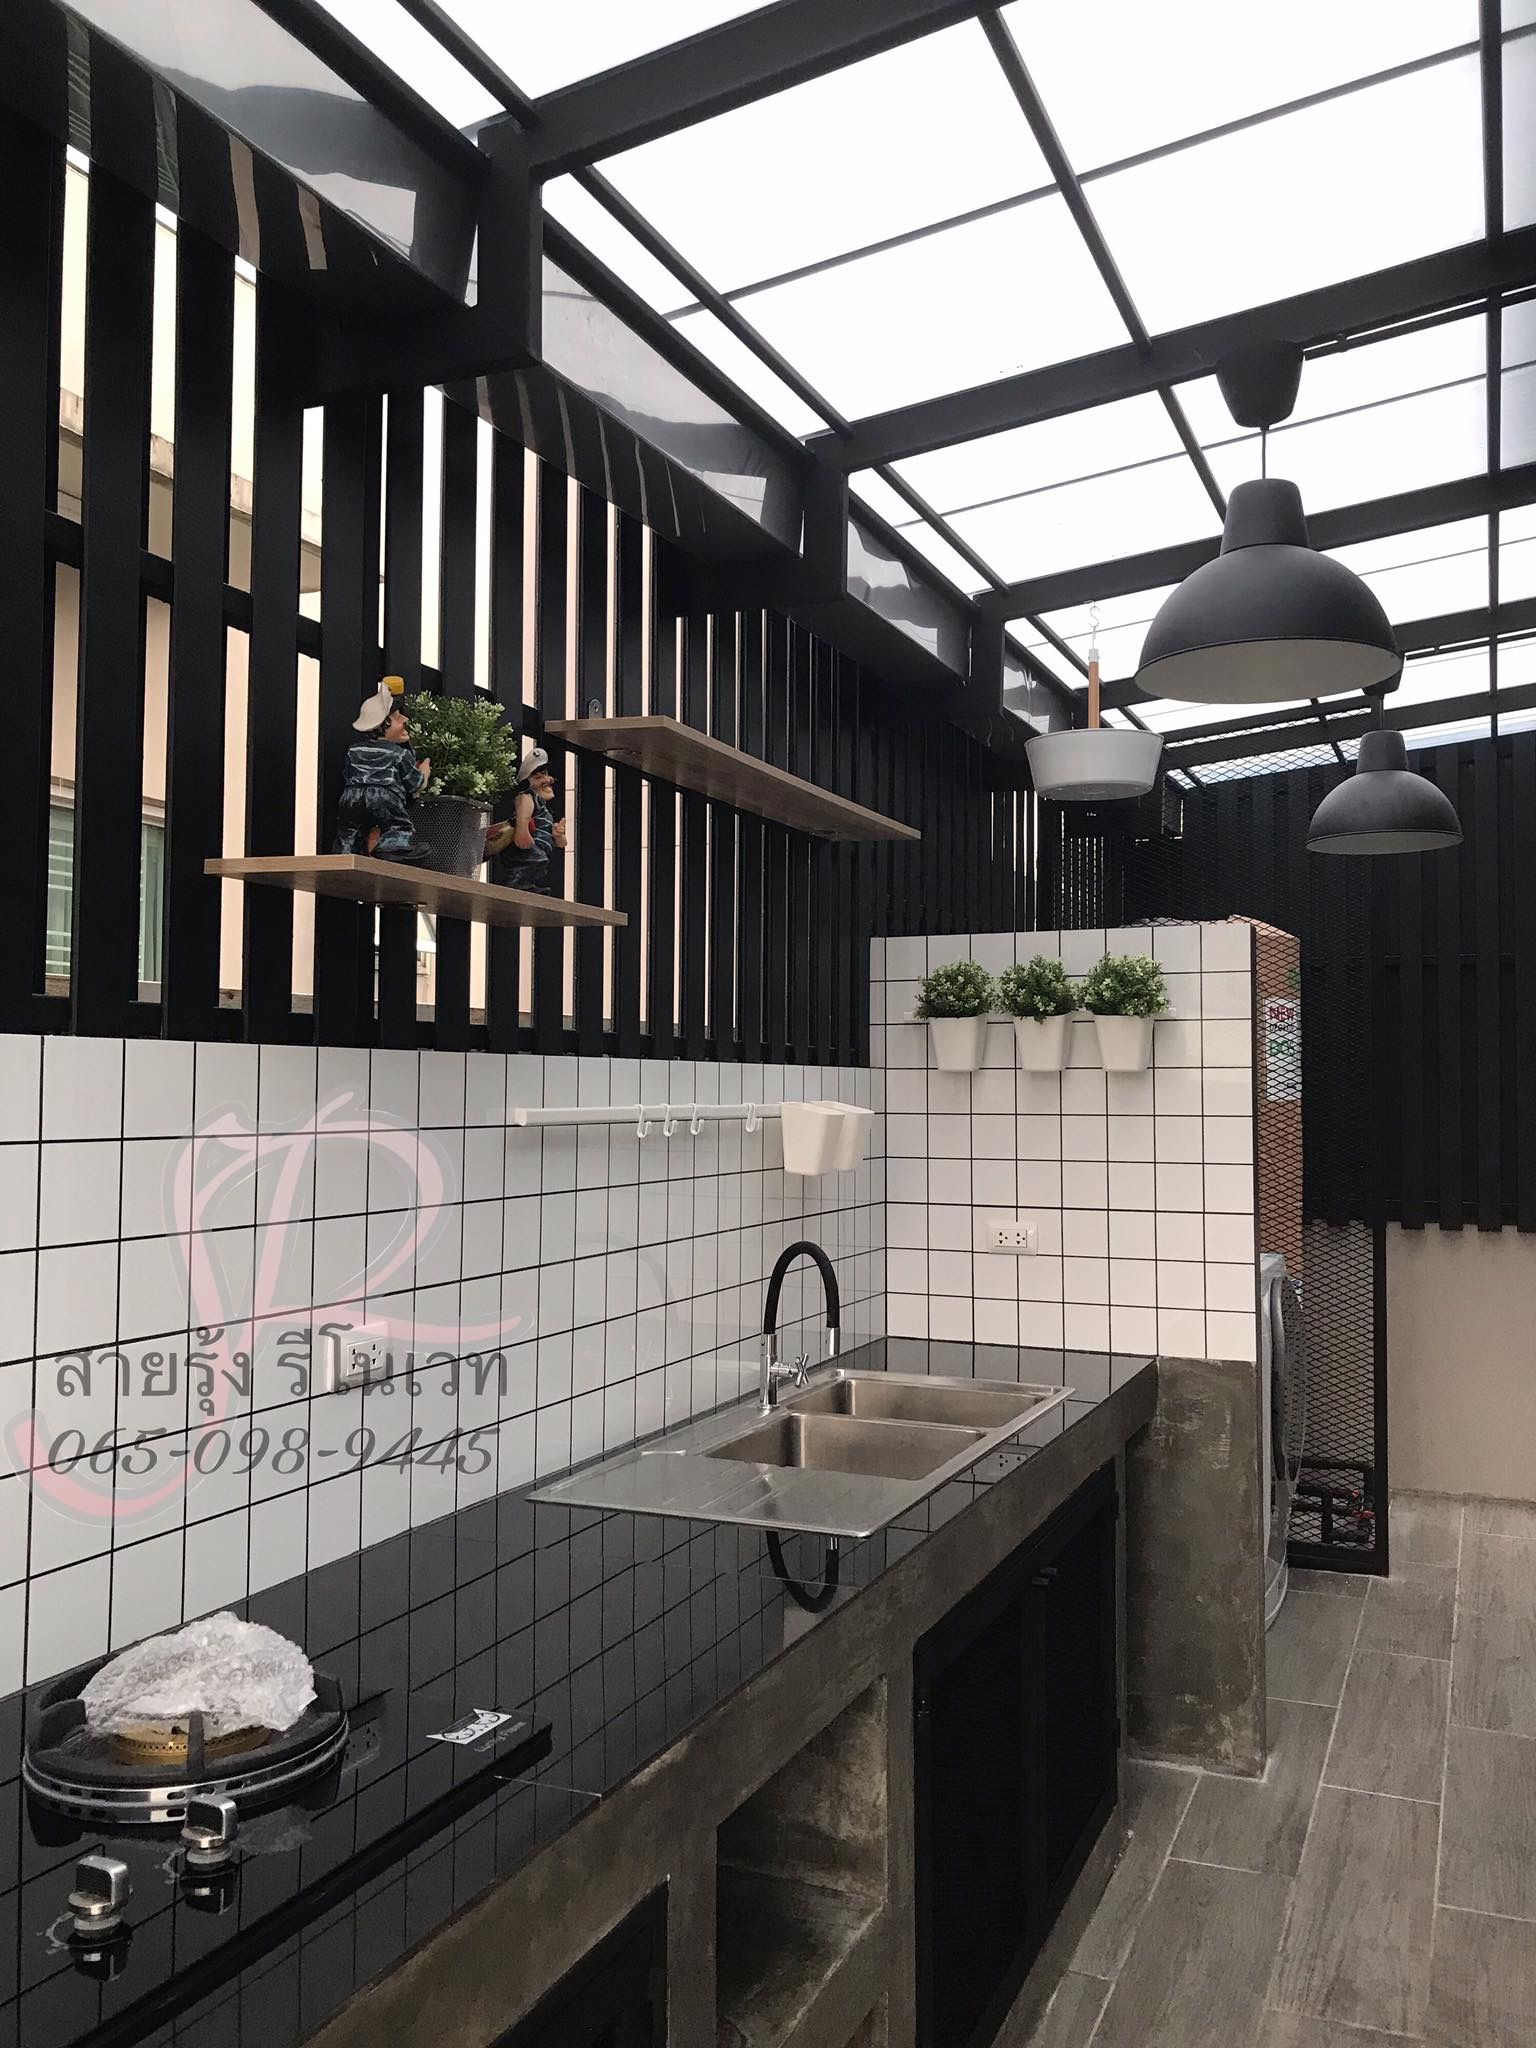 Redo your kitchen in style with elle decor's latest ideas and inspiring kitchen designs. Small Dirty Kitchen Design Ideas Philippines Images - WOWHOMY